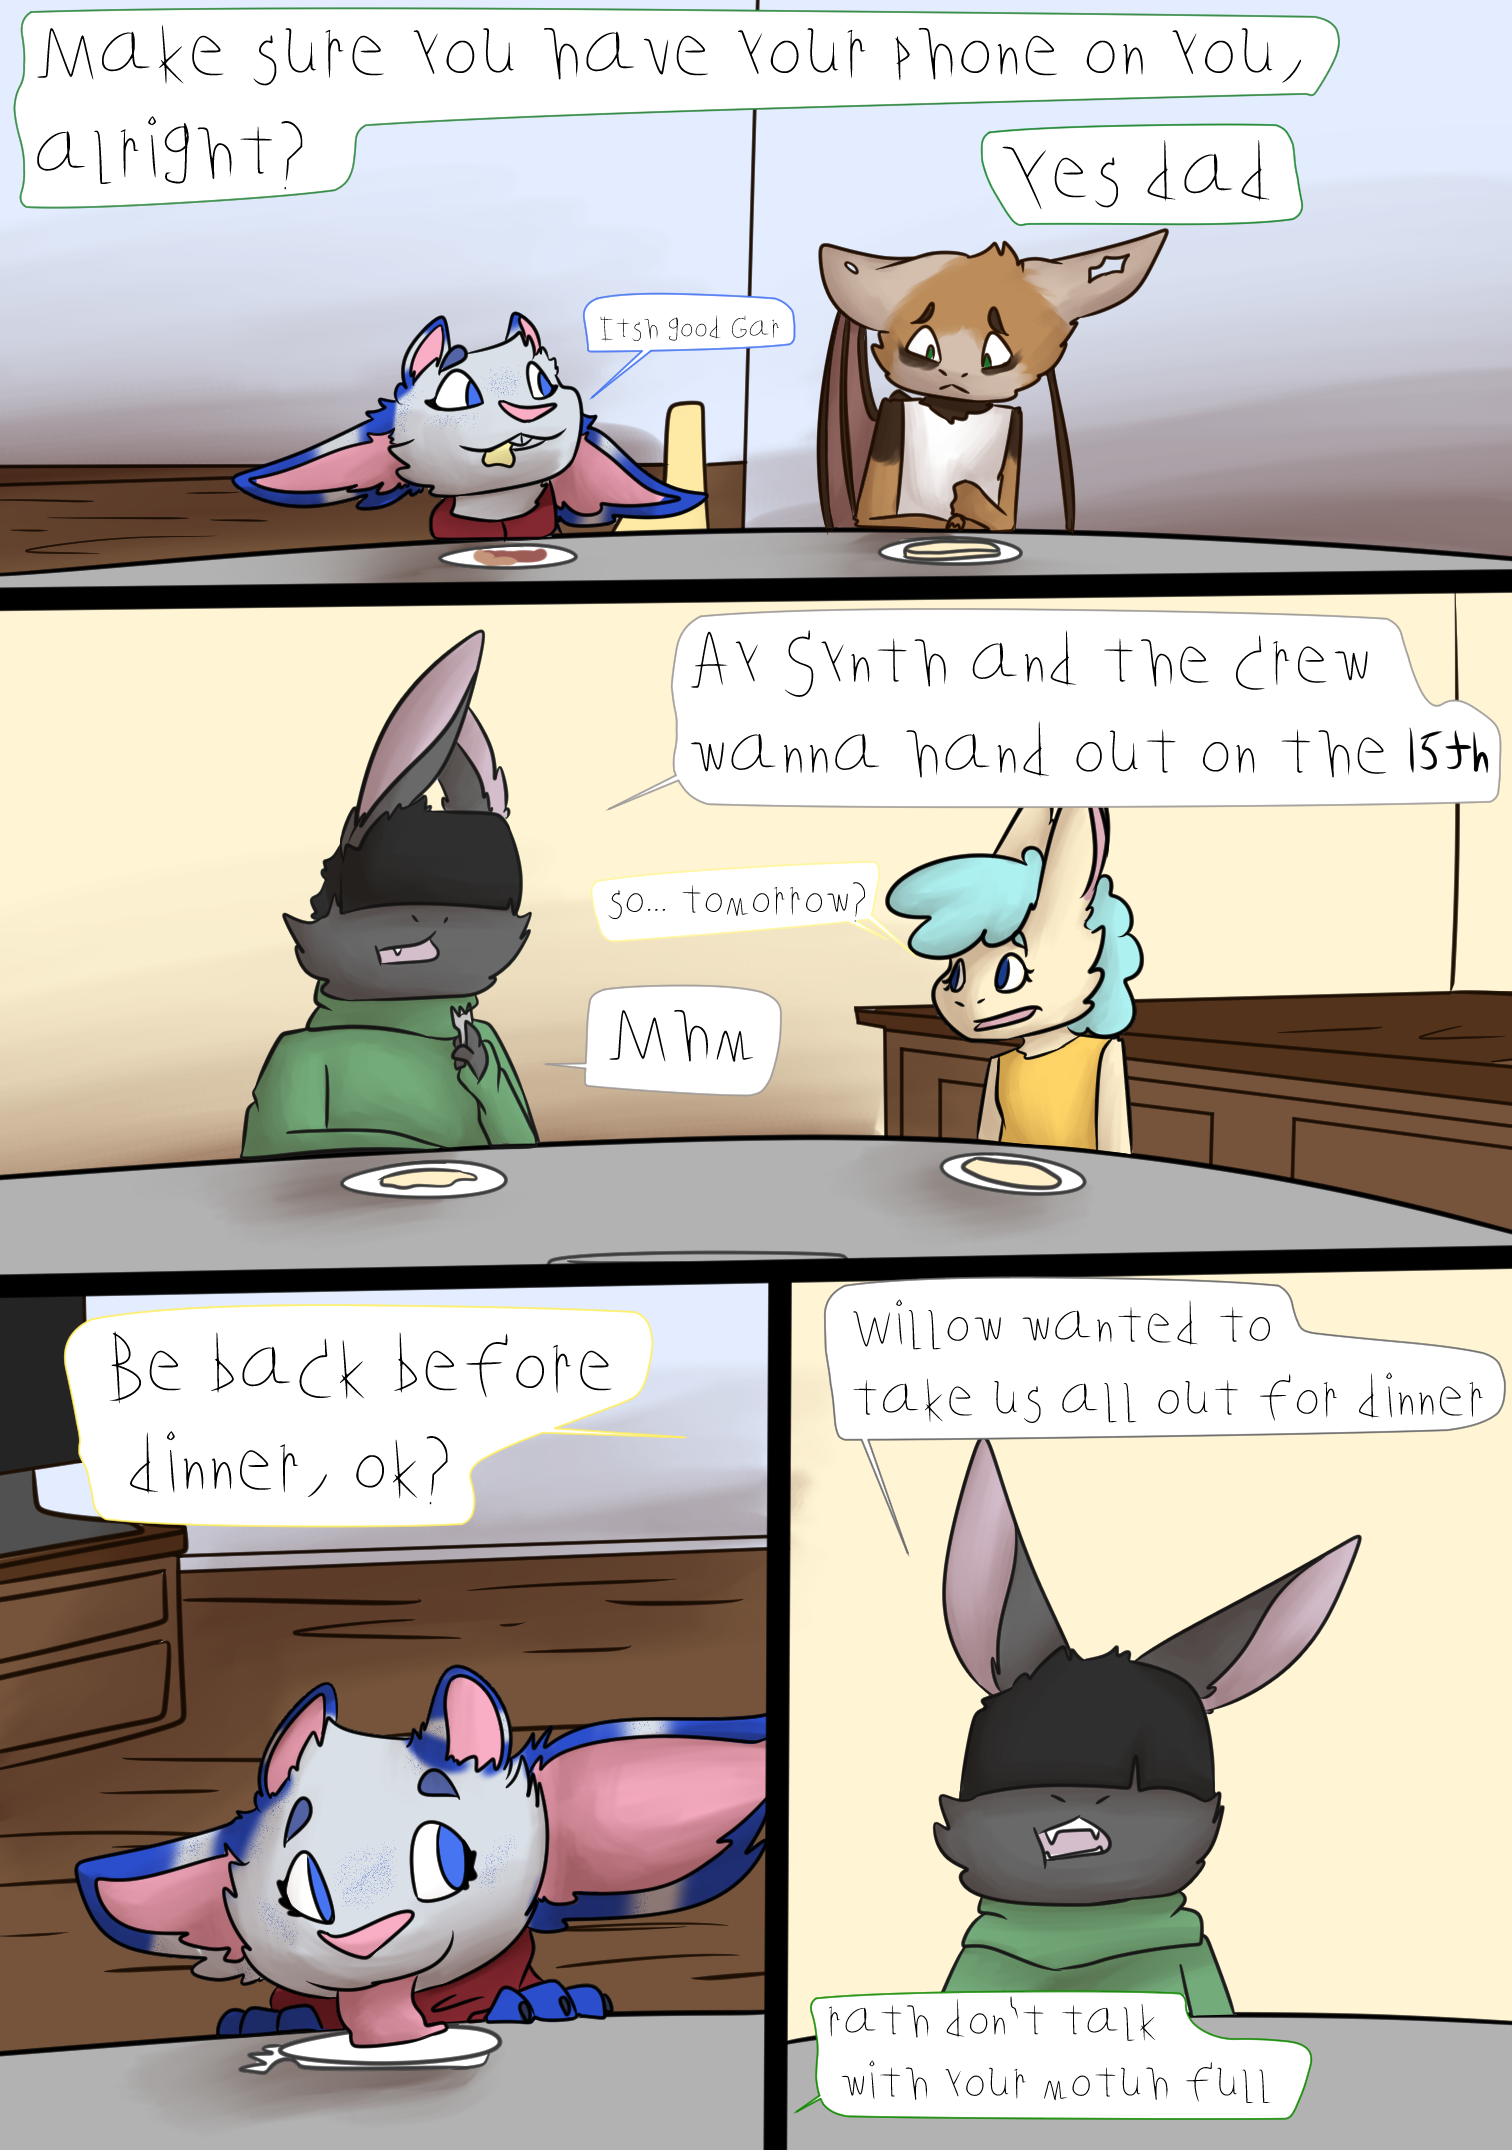 page 12 - The Crew